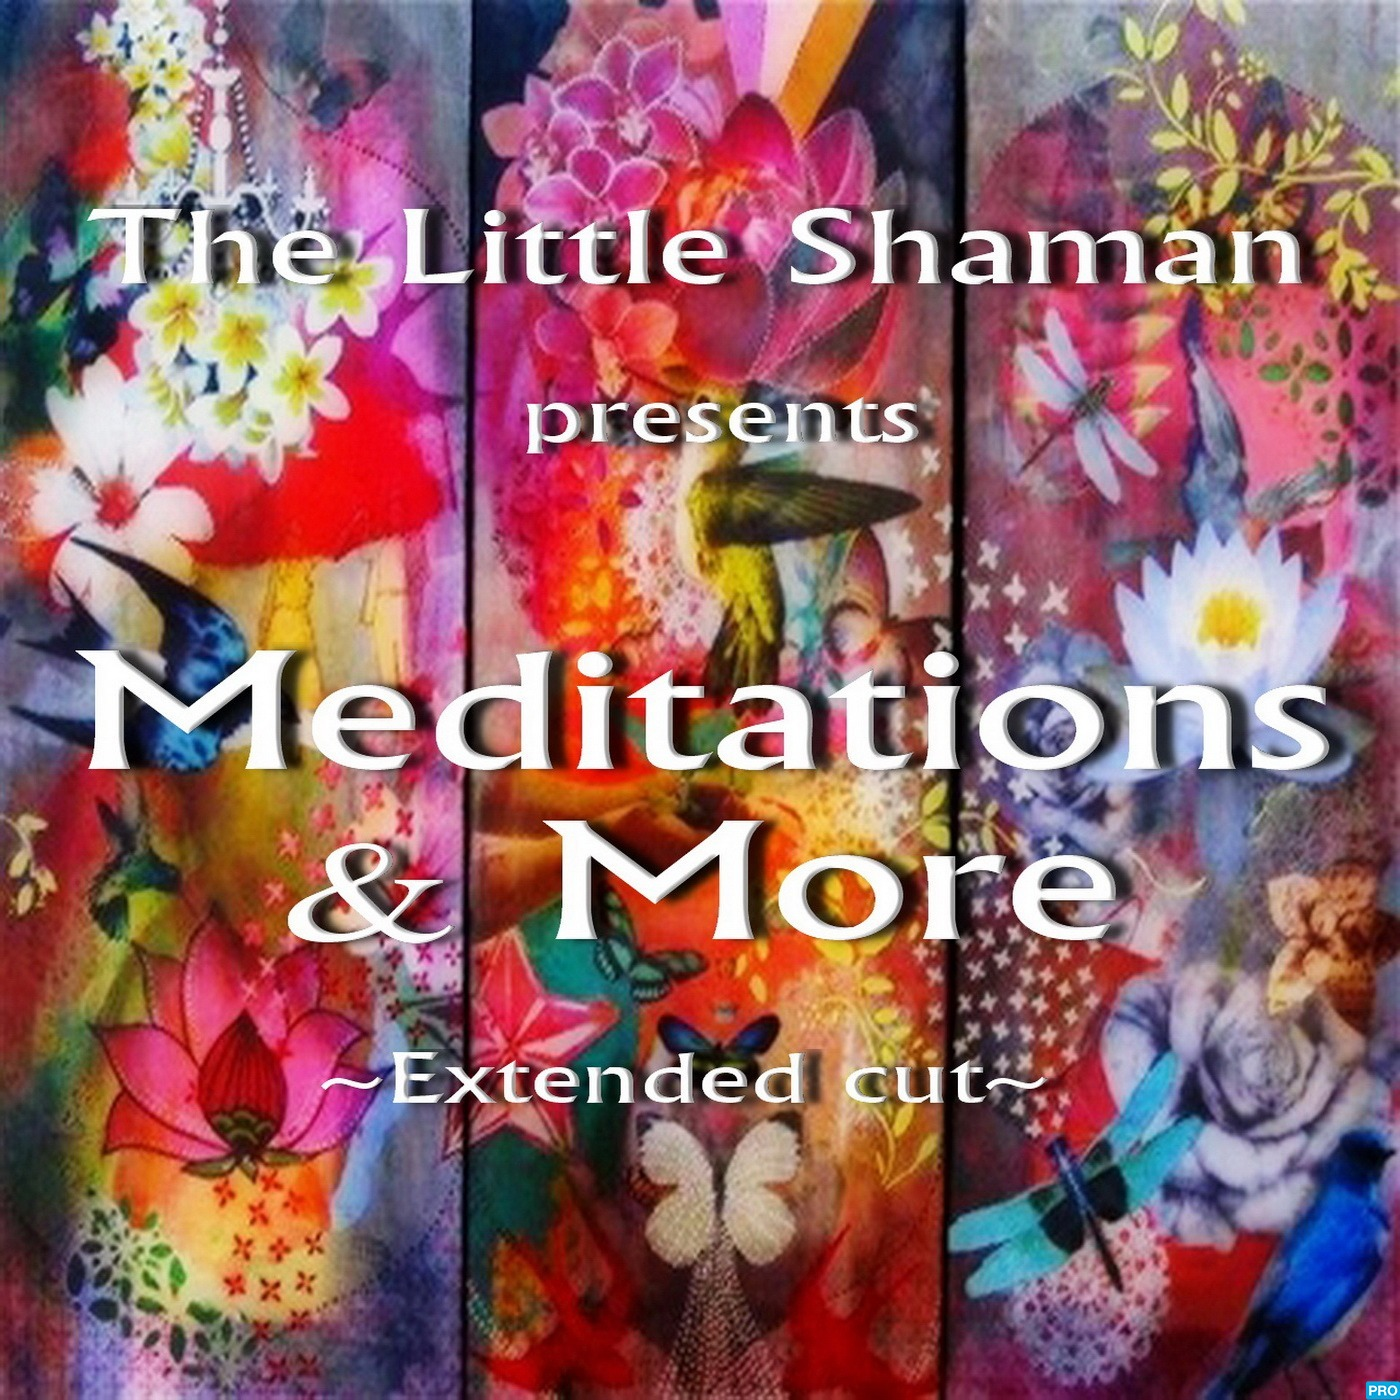 The Little Shaman: Meditations & More